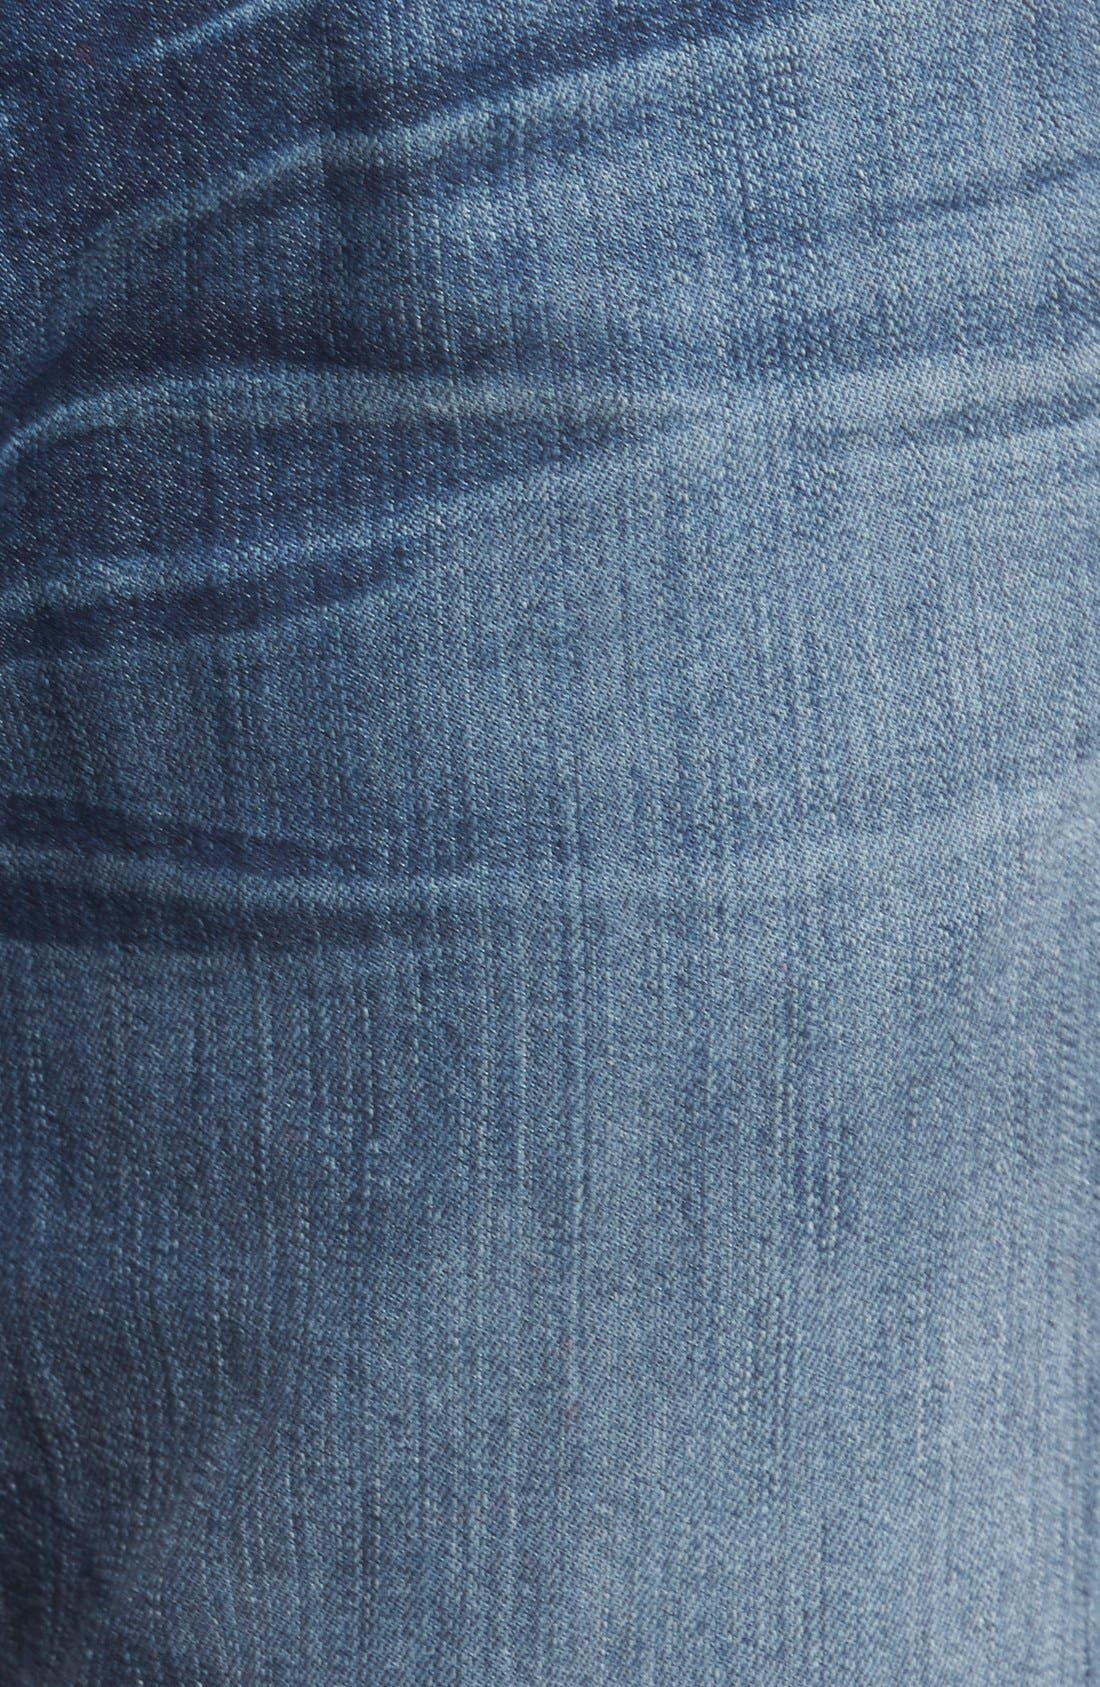 'Slimmy - Luxe Performance' Slim Fit Jeans,                             Alternate thumbnail 5, color,                             Air Weft Commotion